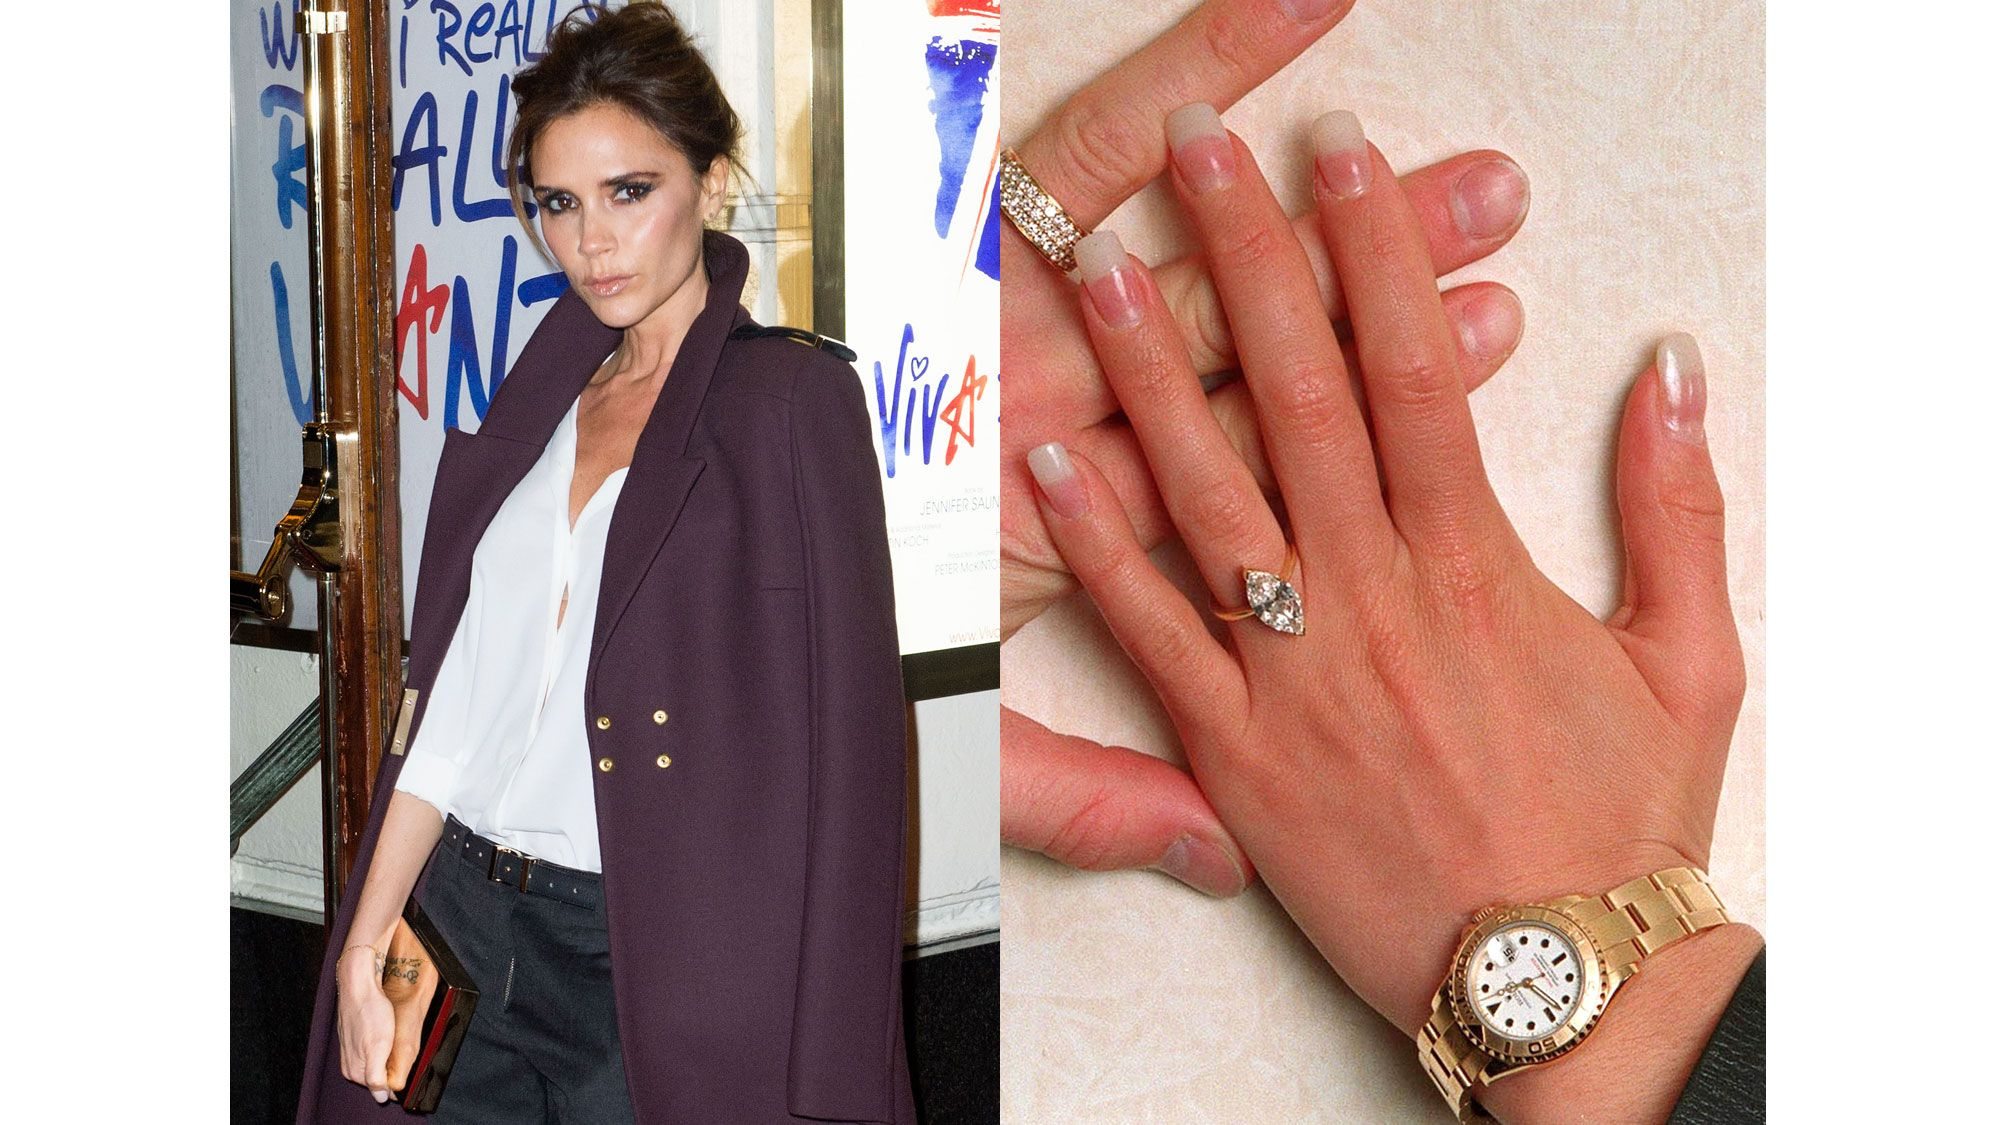 find this pin and more on celebrity engagement rings britton diamonds david beckham proposed to victoria